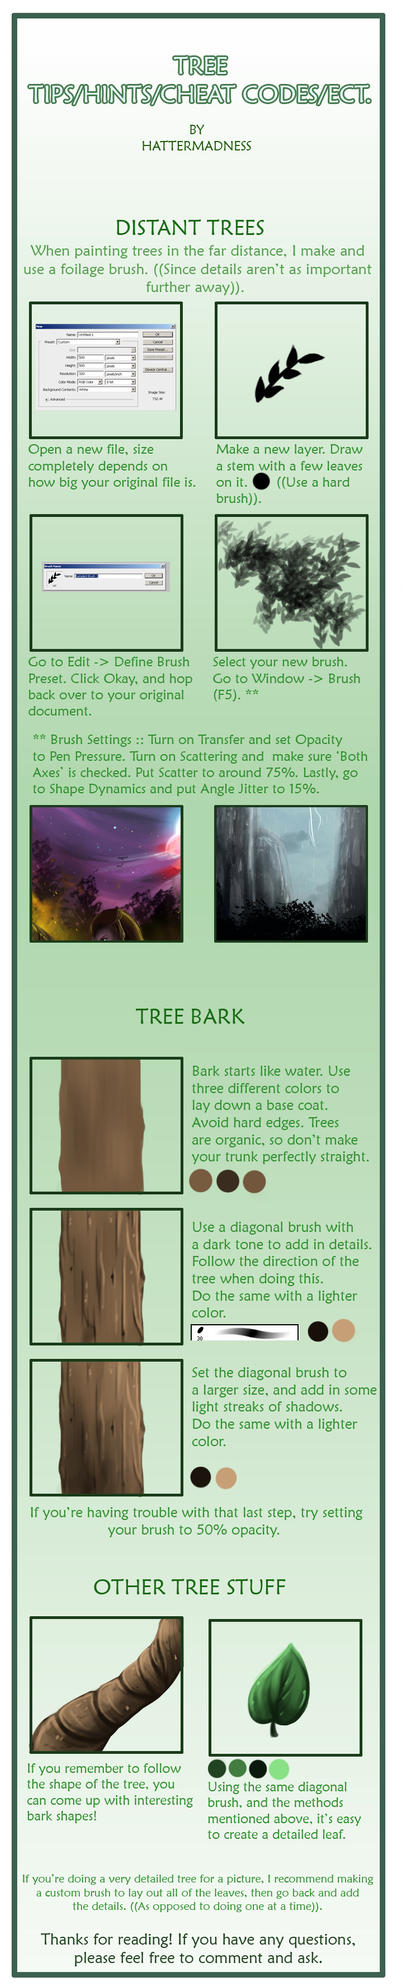 Tree Hints/Tips by HatterMadness